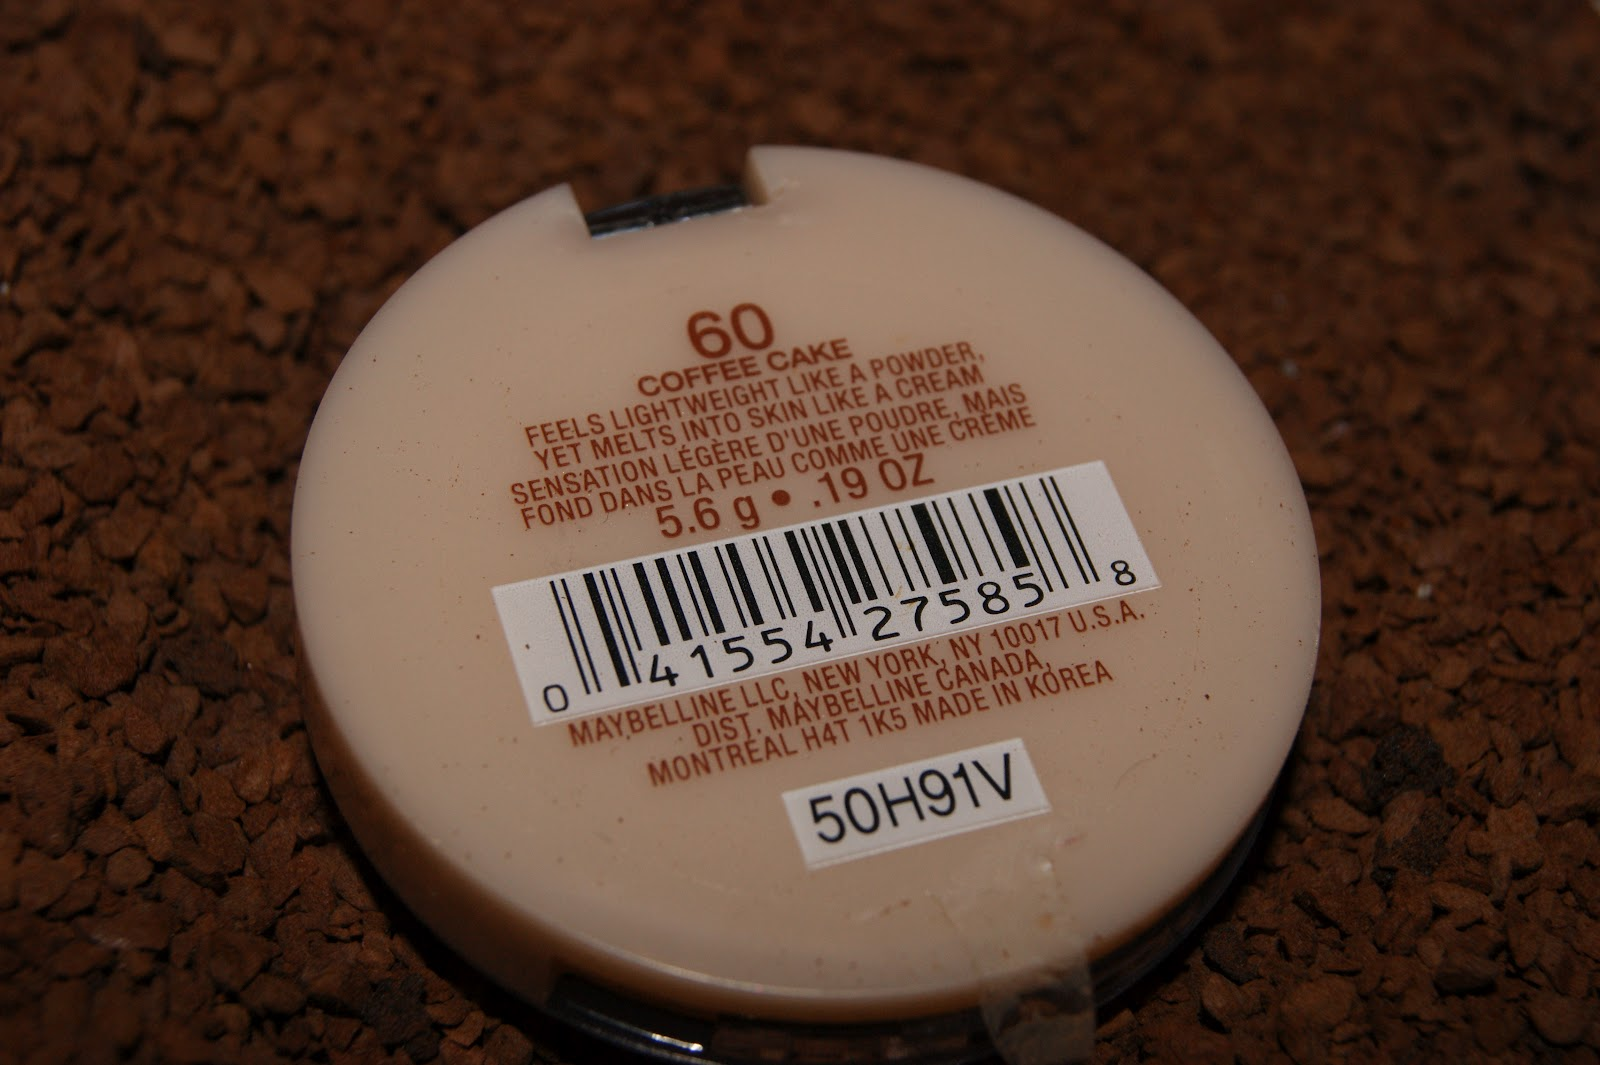 Maybelline Bouncy Blush Coffee Cake